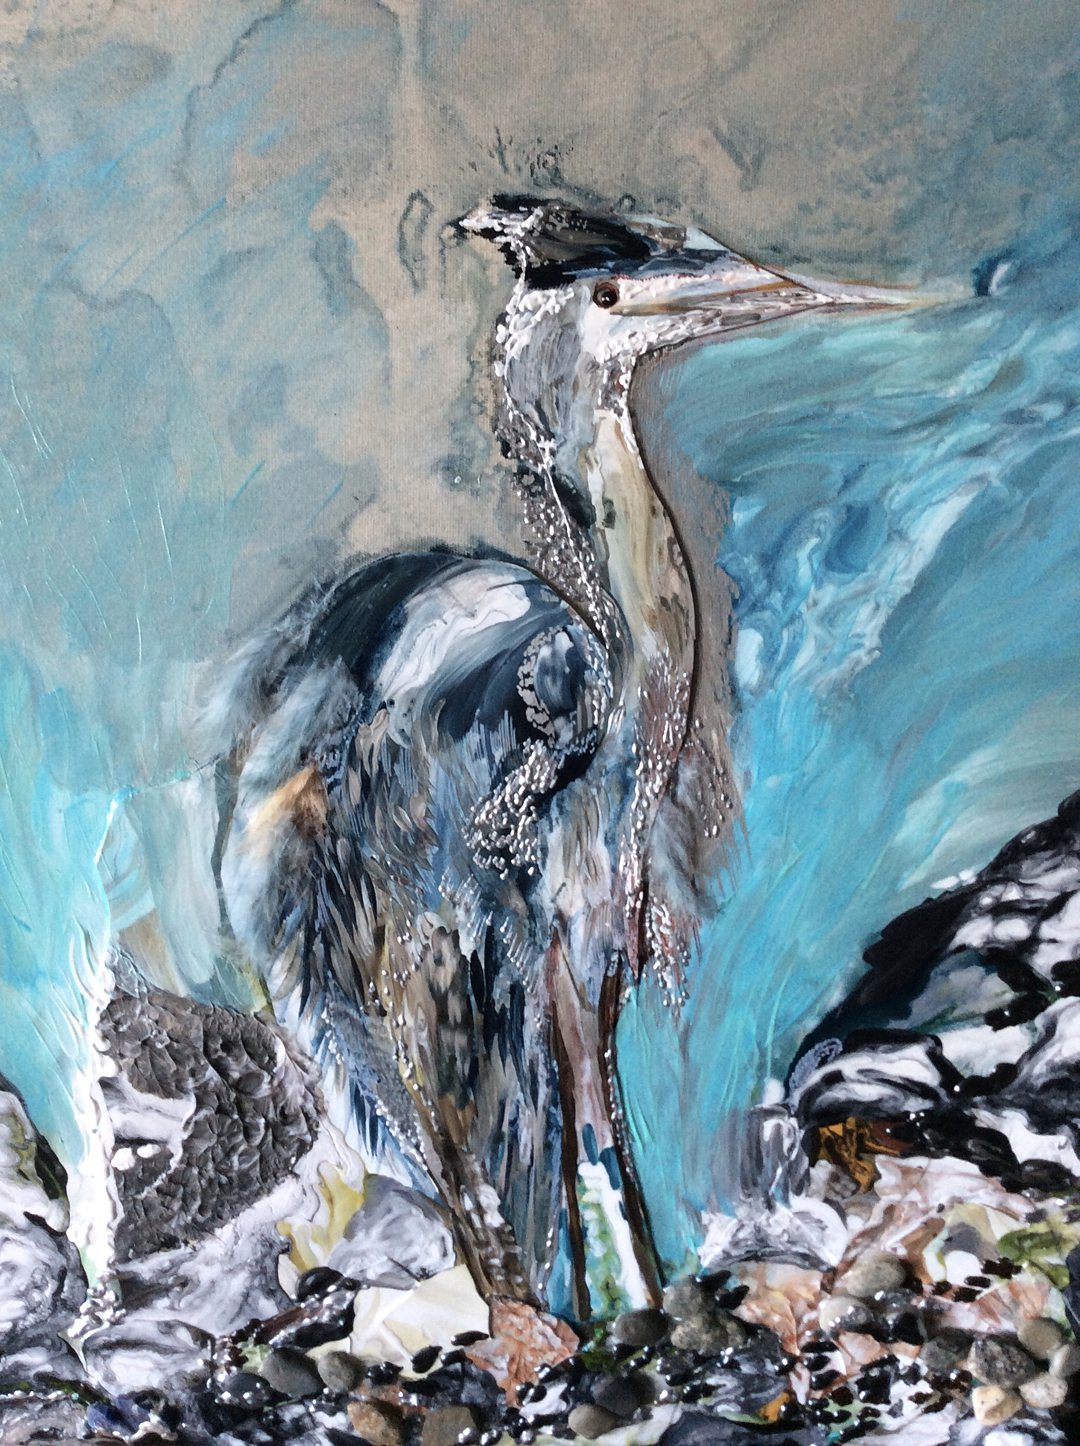 Abstract art collection by North Vancouver artist Diana Zoe Coop | Limited Edition Prints available | The Blue Heron